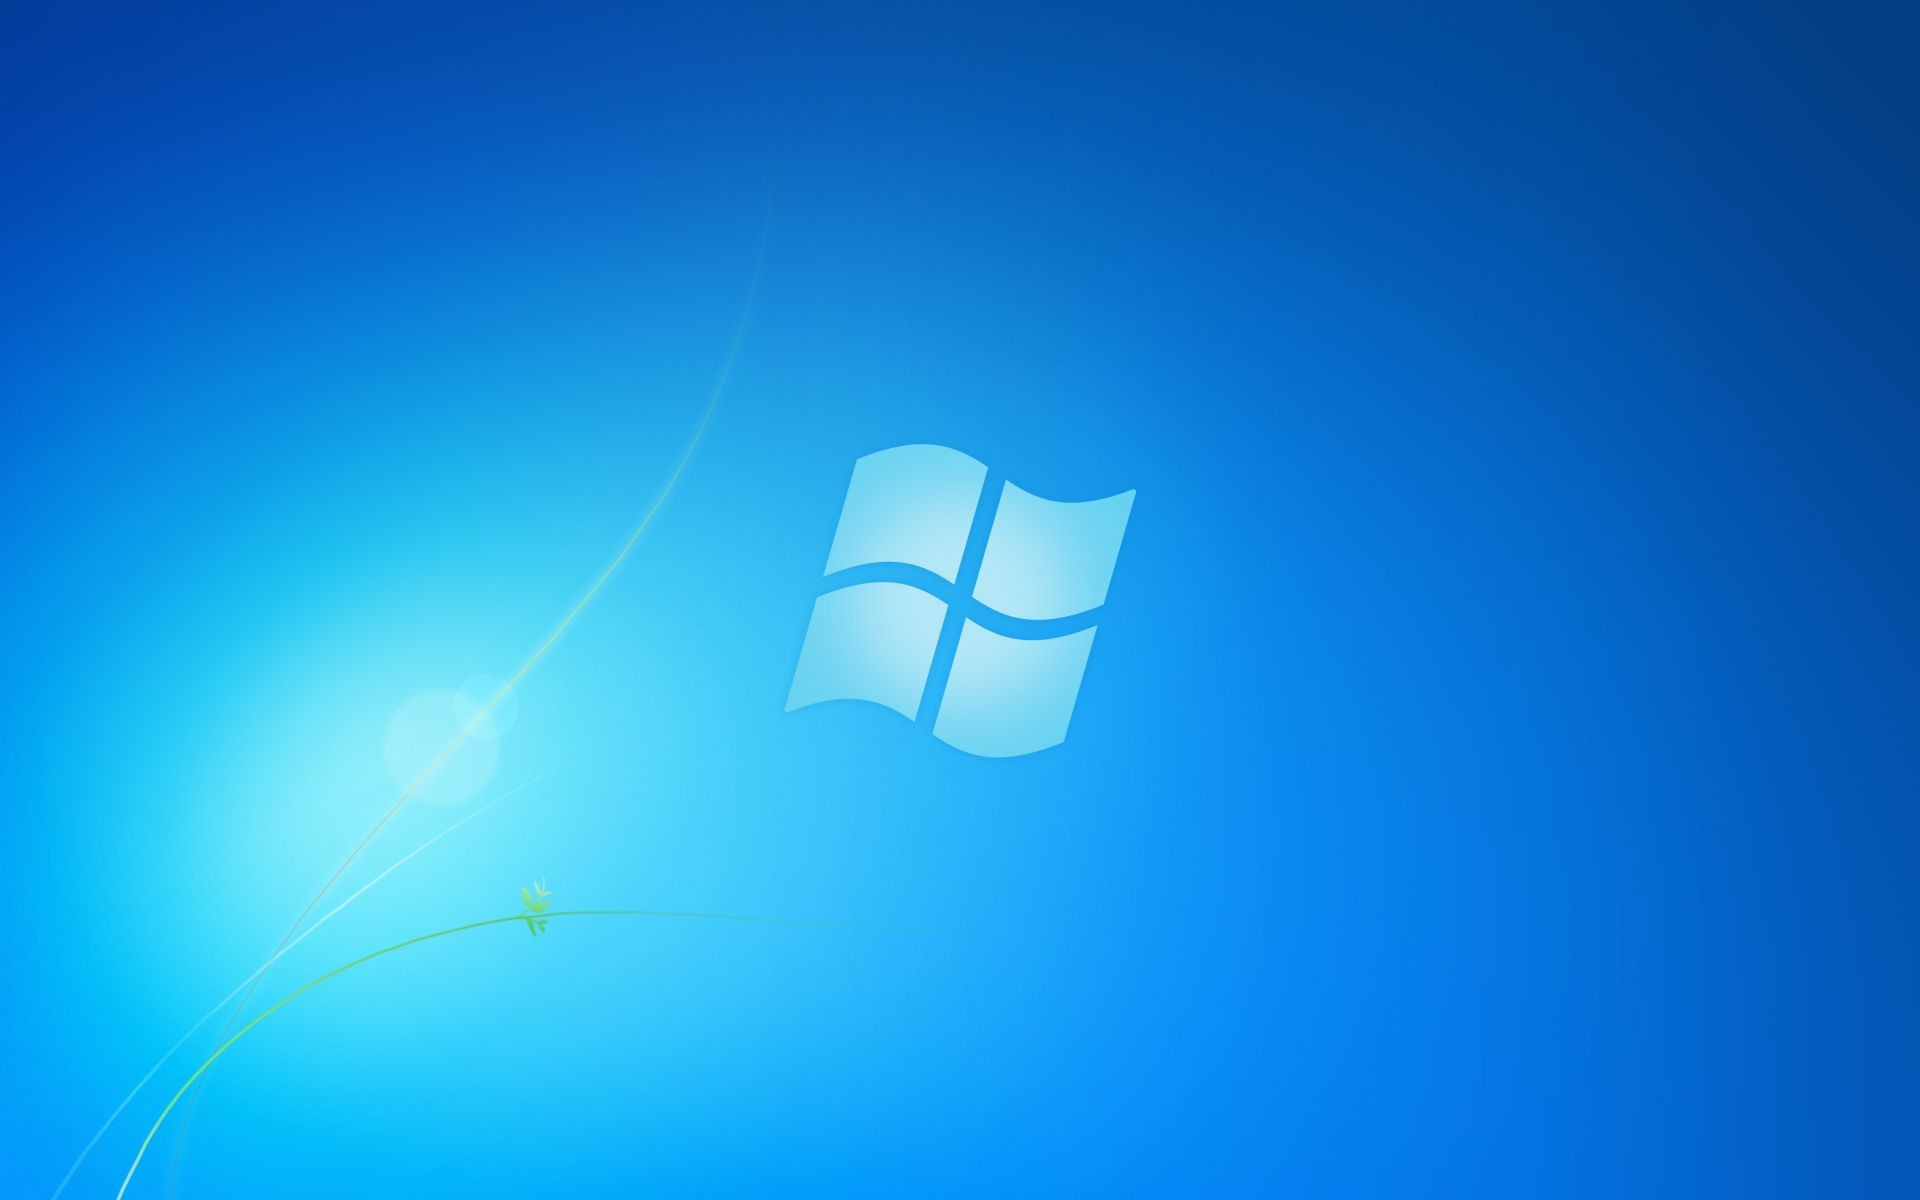 57+ windows 7 backgrounds ·① download free beautiful full hd